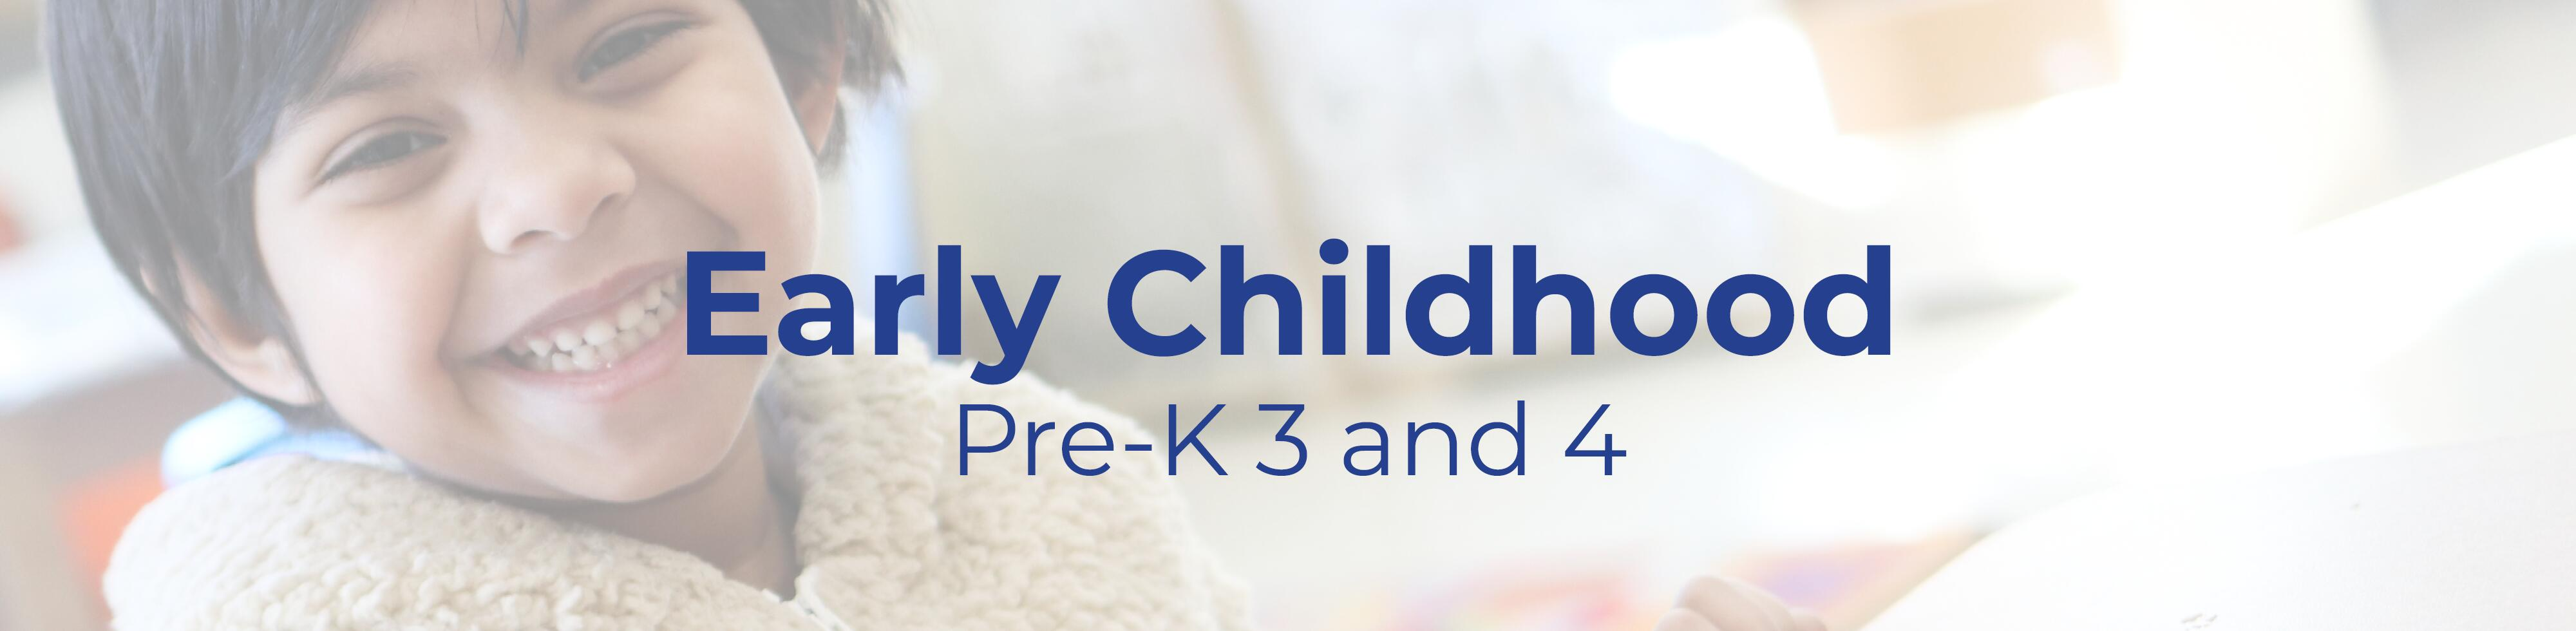 "Text that reads ""Early Childhood Pre-K 3 and 4"" overlaid on a picture of a student working"